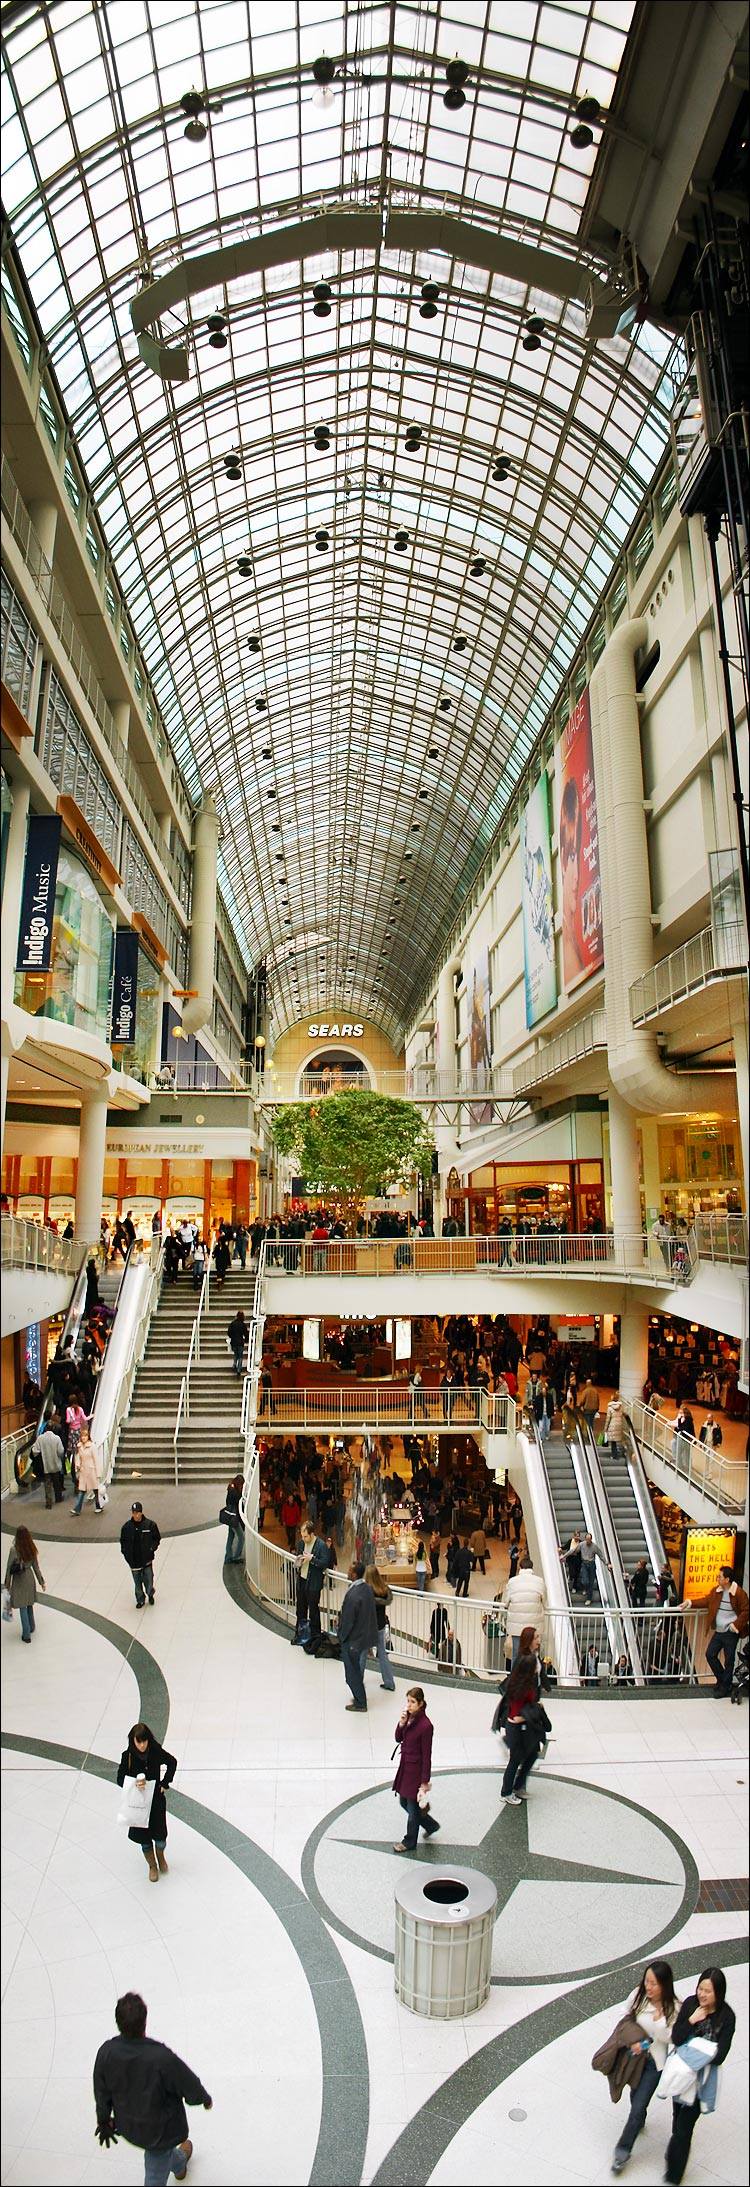 tall eaton center || canon 300d/ef-s 18-55 | 1/40s/f4 + 1/80s/f5.6 | ISO 200 | handheld